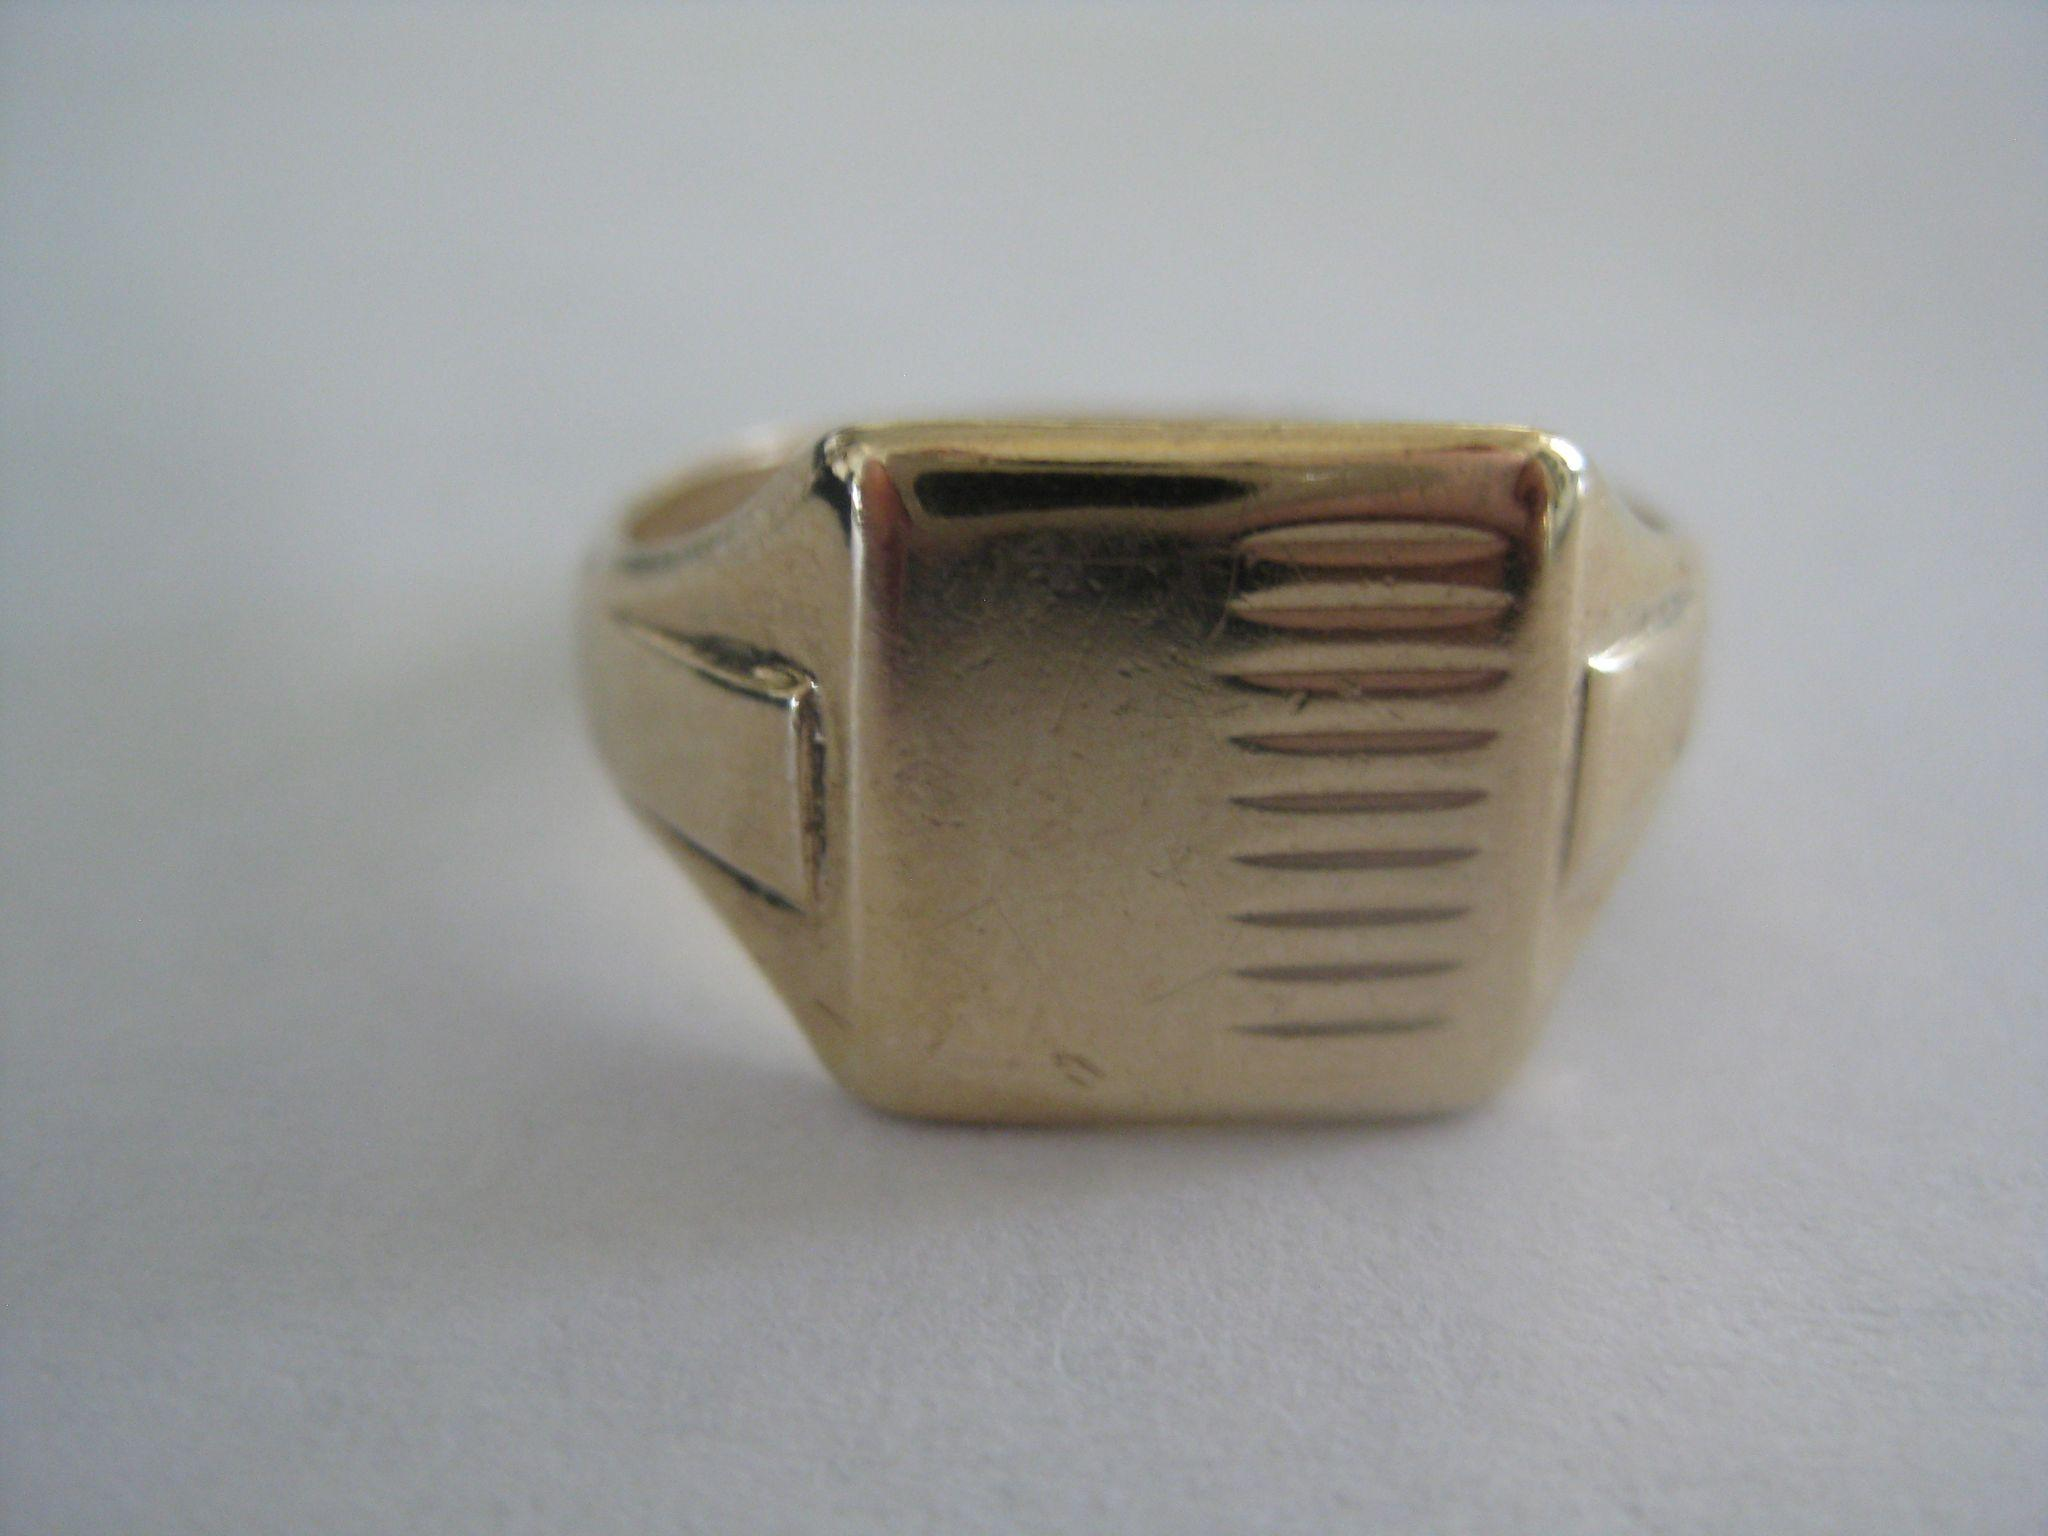 Vintage 9ct Gold Man's Signet Ring